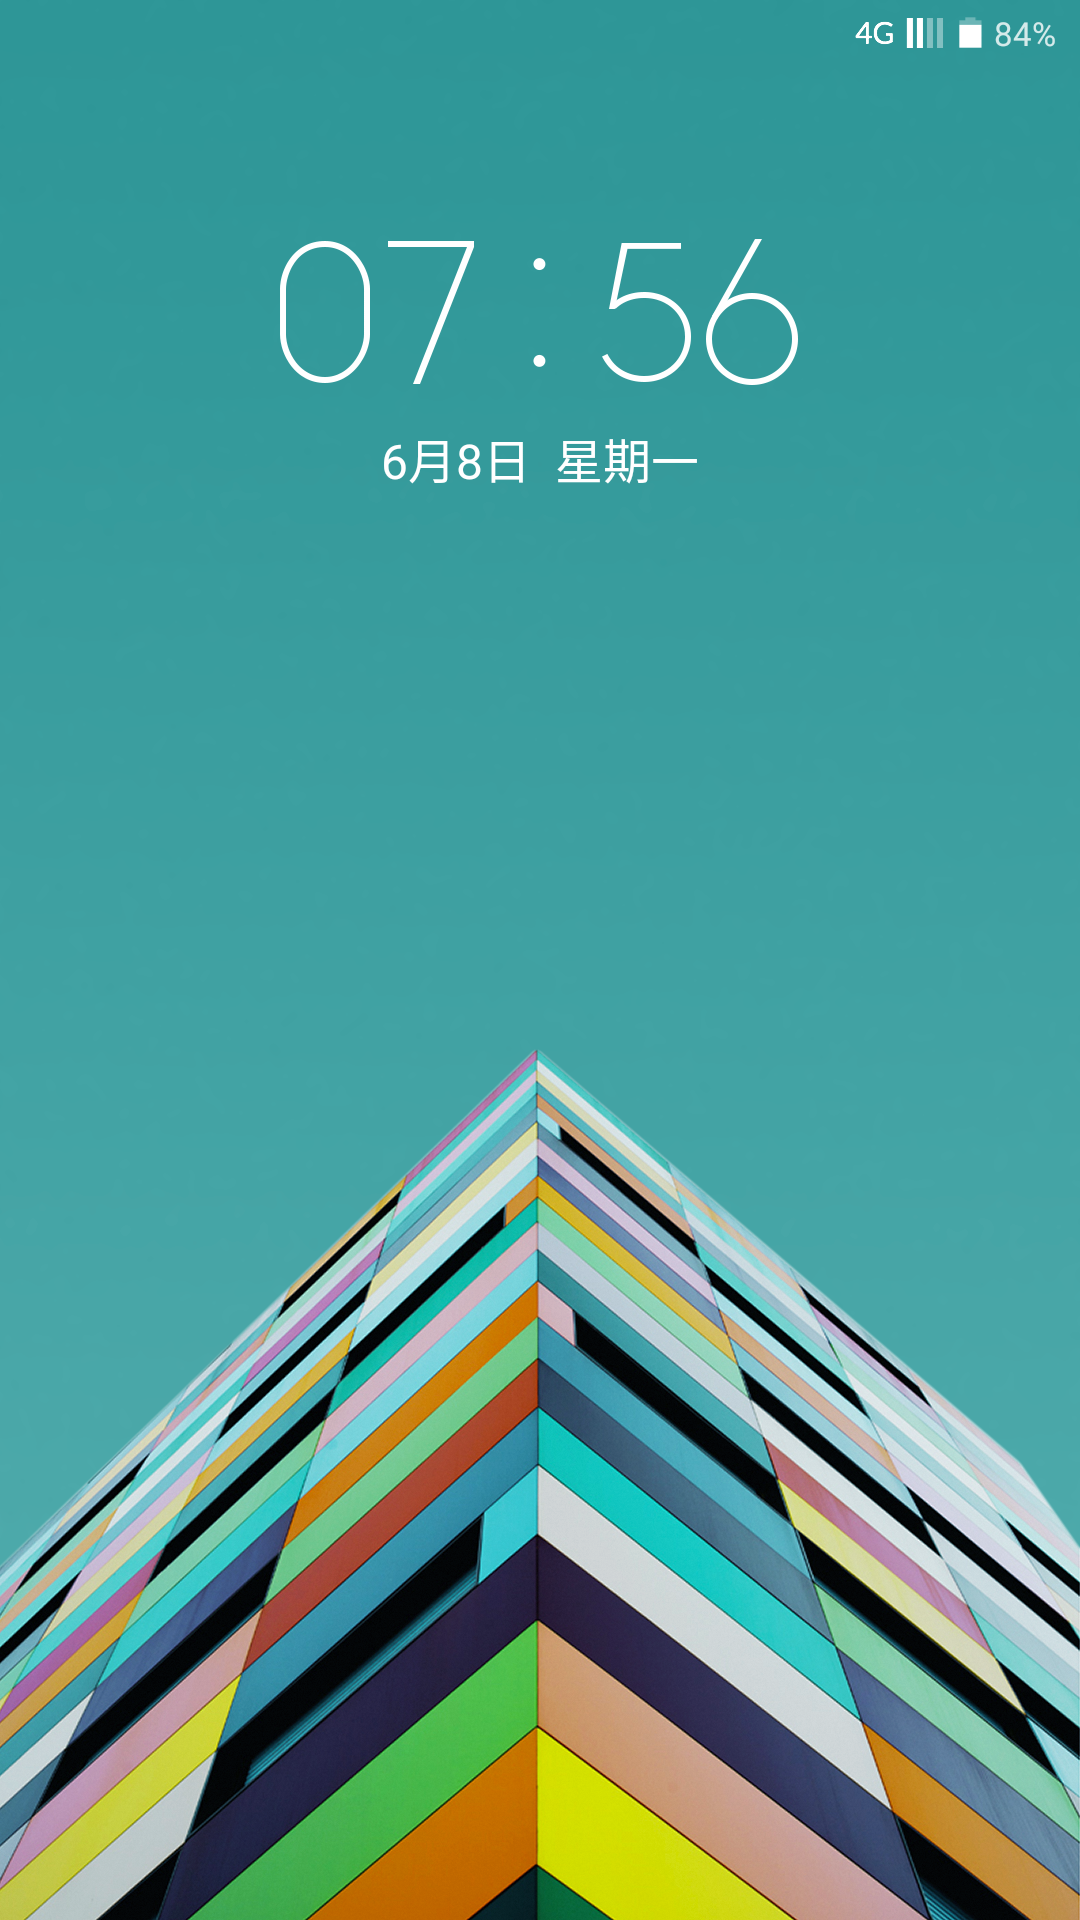 Screenshot_2015-06-08-07-56-09.png